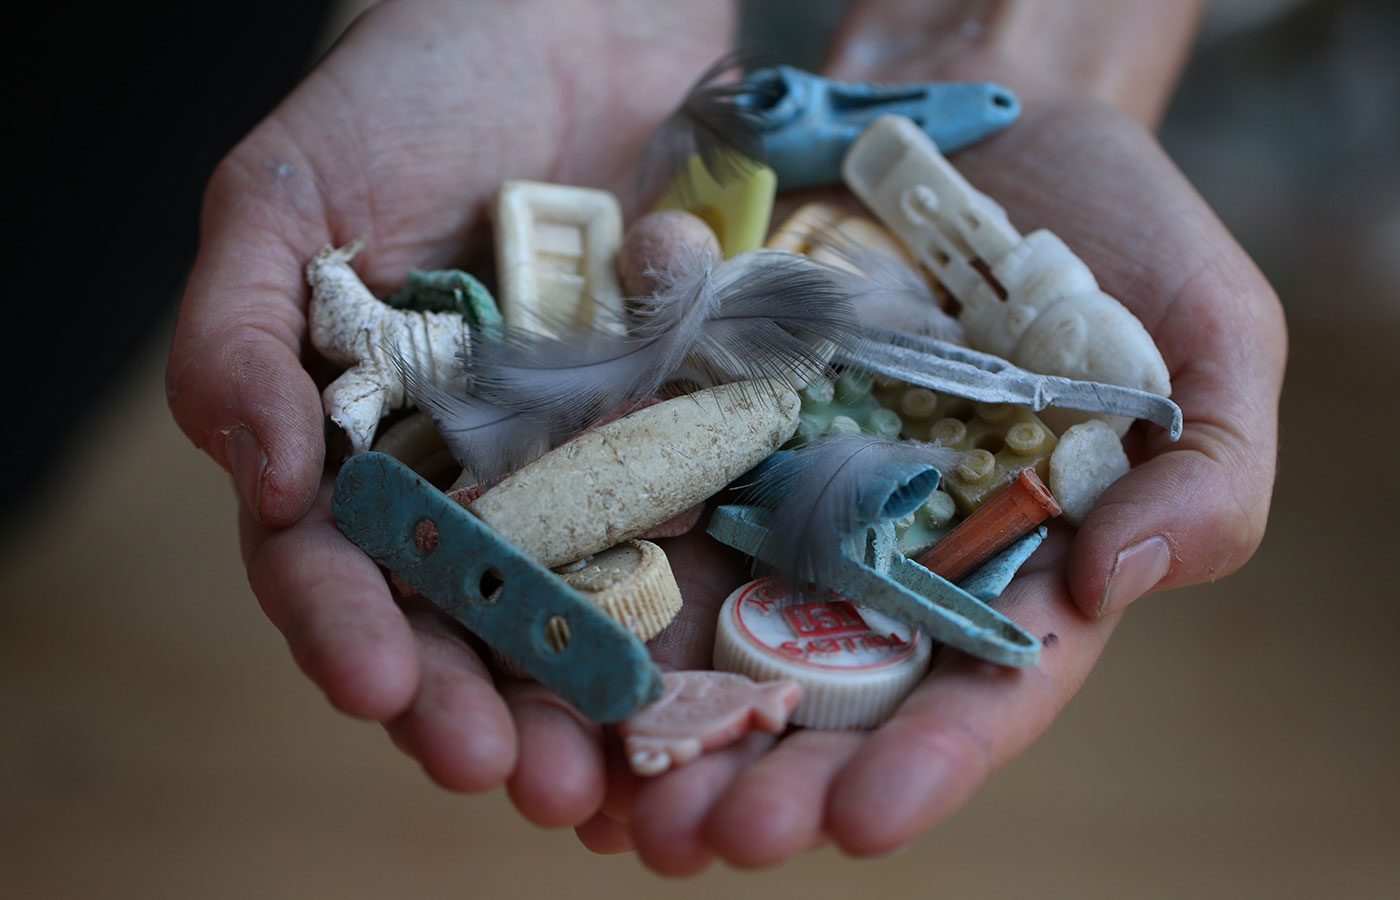 A pair of hands holding a variety of plastic articles retrieved from the ocean.